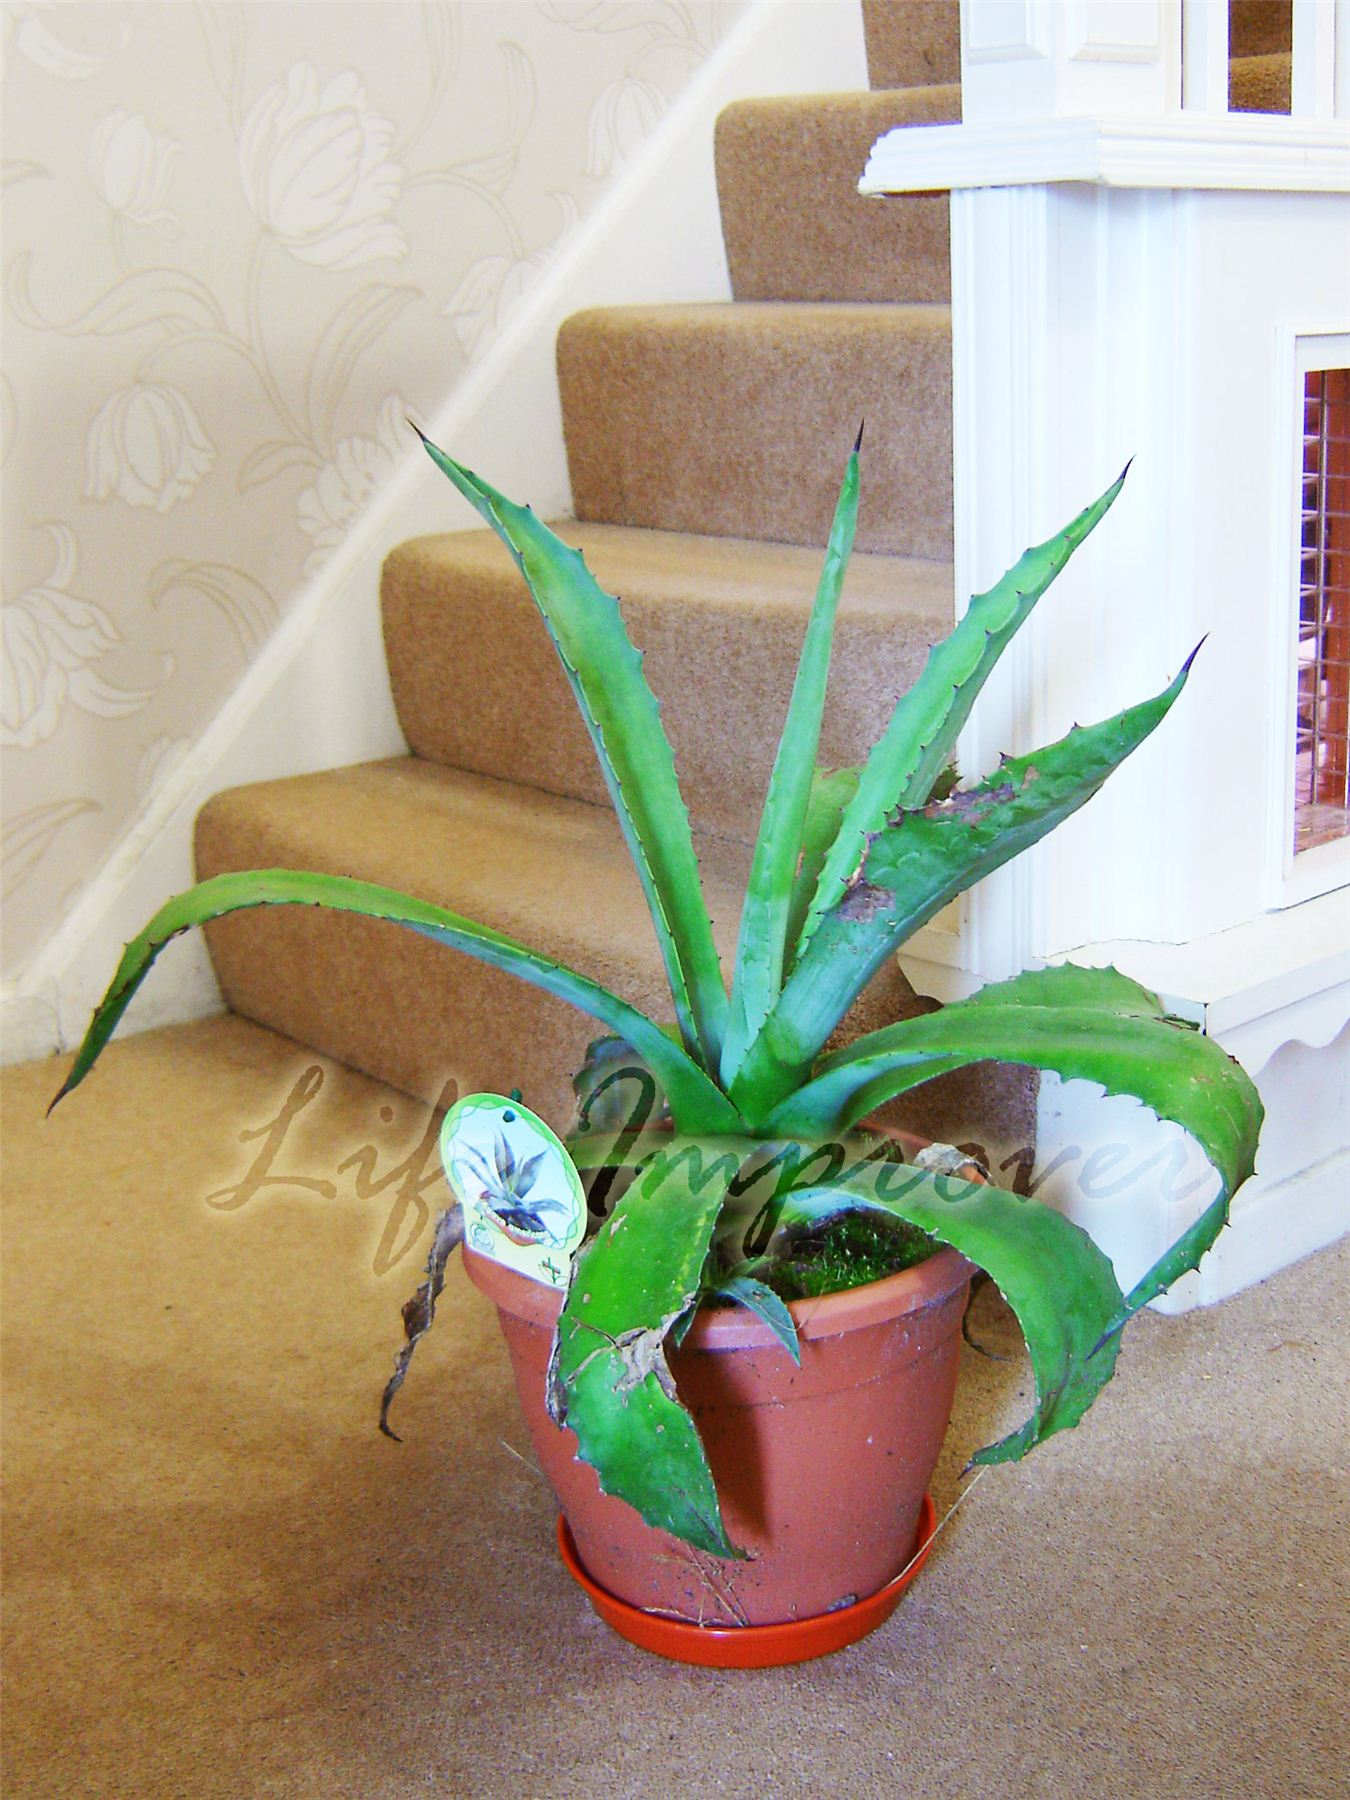 Evergreen nature aloe vera en pot natural medicinal gu rison jardin int rieur plante ebay - Aloe vera en pot ...